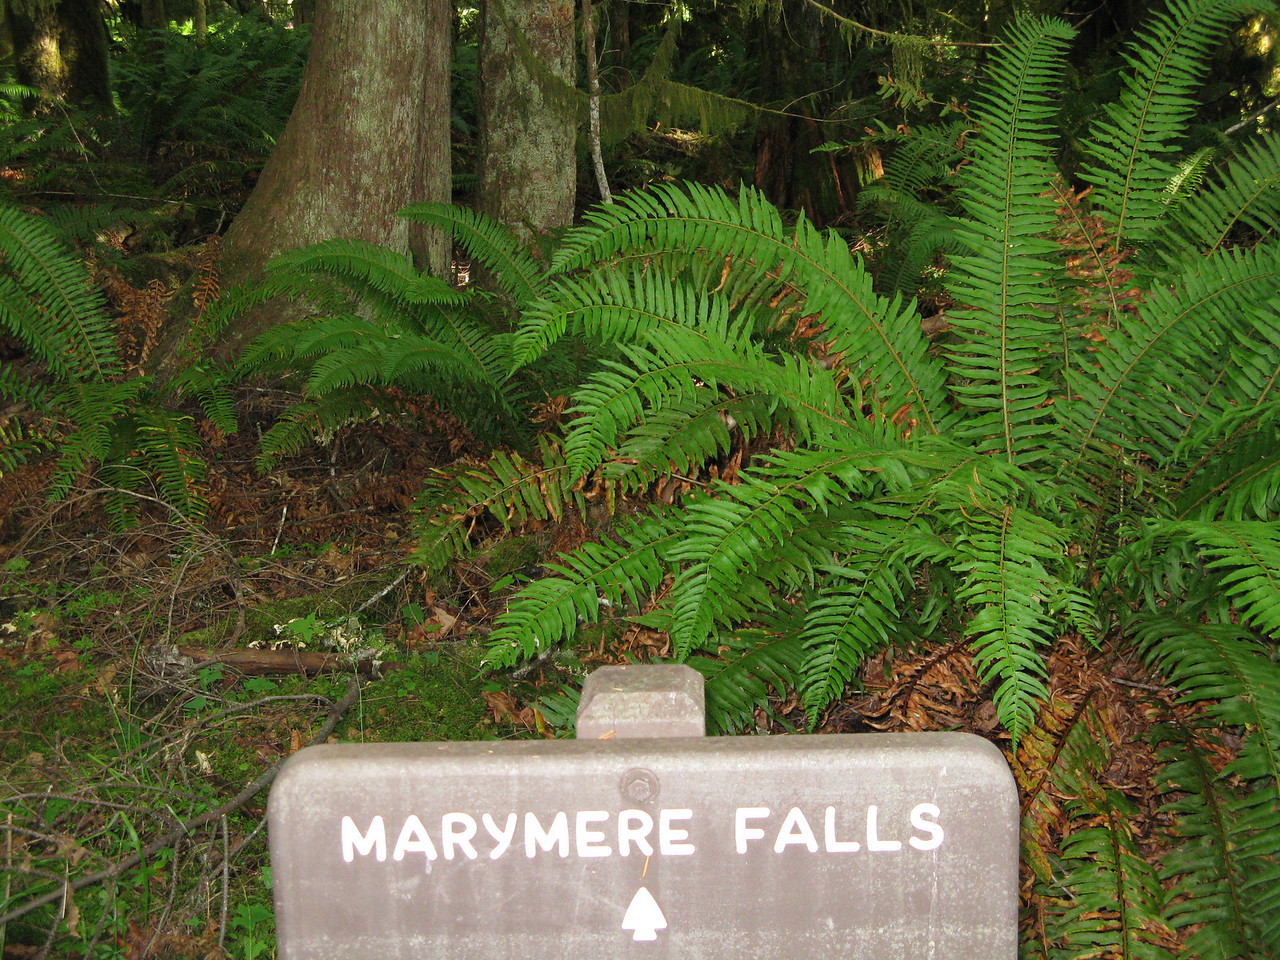 Marymere Falls was a short 1.5 mile (5 kilometer round trip) saunter along Barnes Creek.  This was a year round volkswalk sponsored by the Olympic Peninsula Explorers Volkssporting Club of Port Angeles.